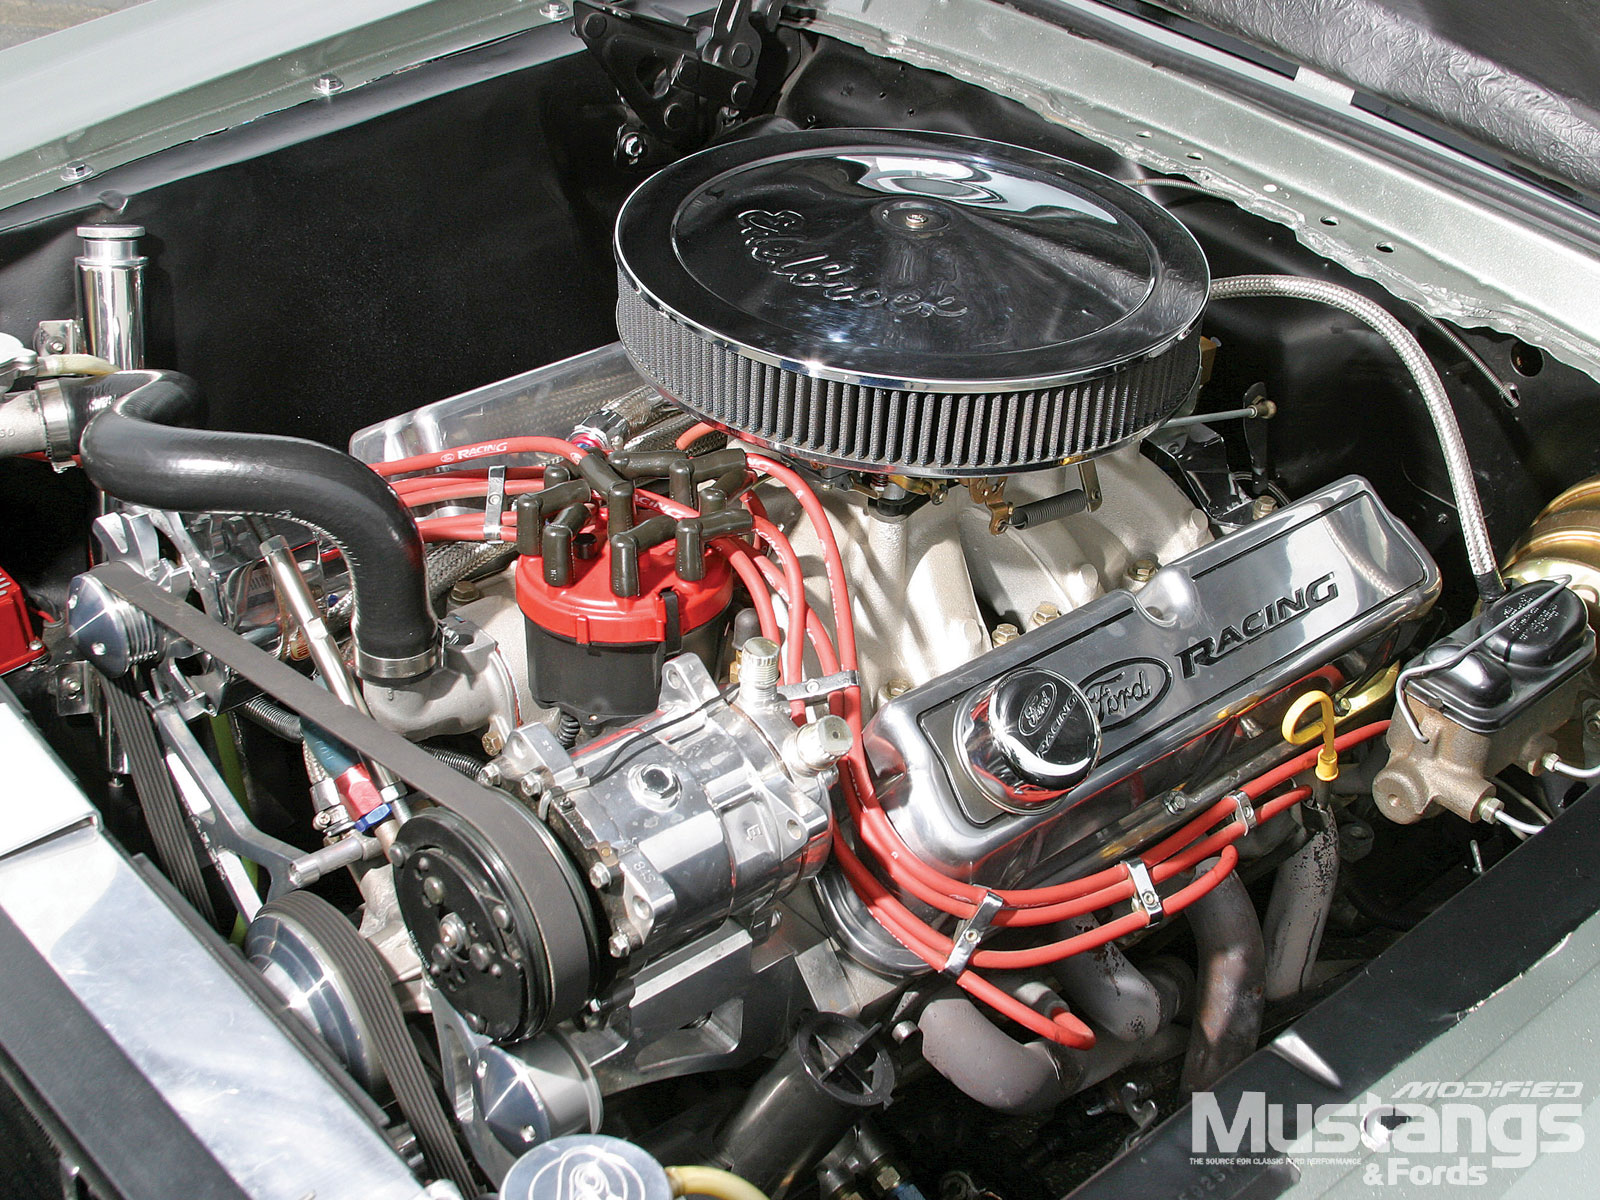 1967 Mustang Eleanor Replica Engine